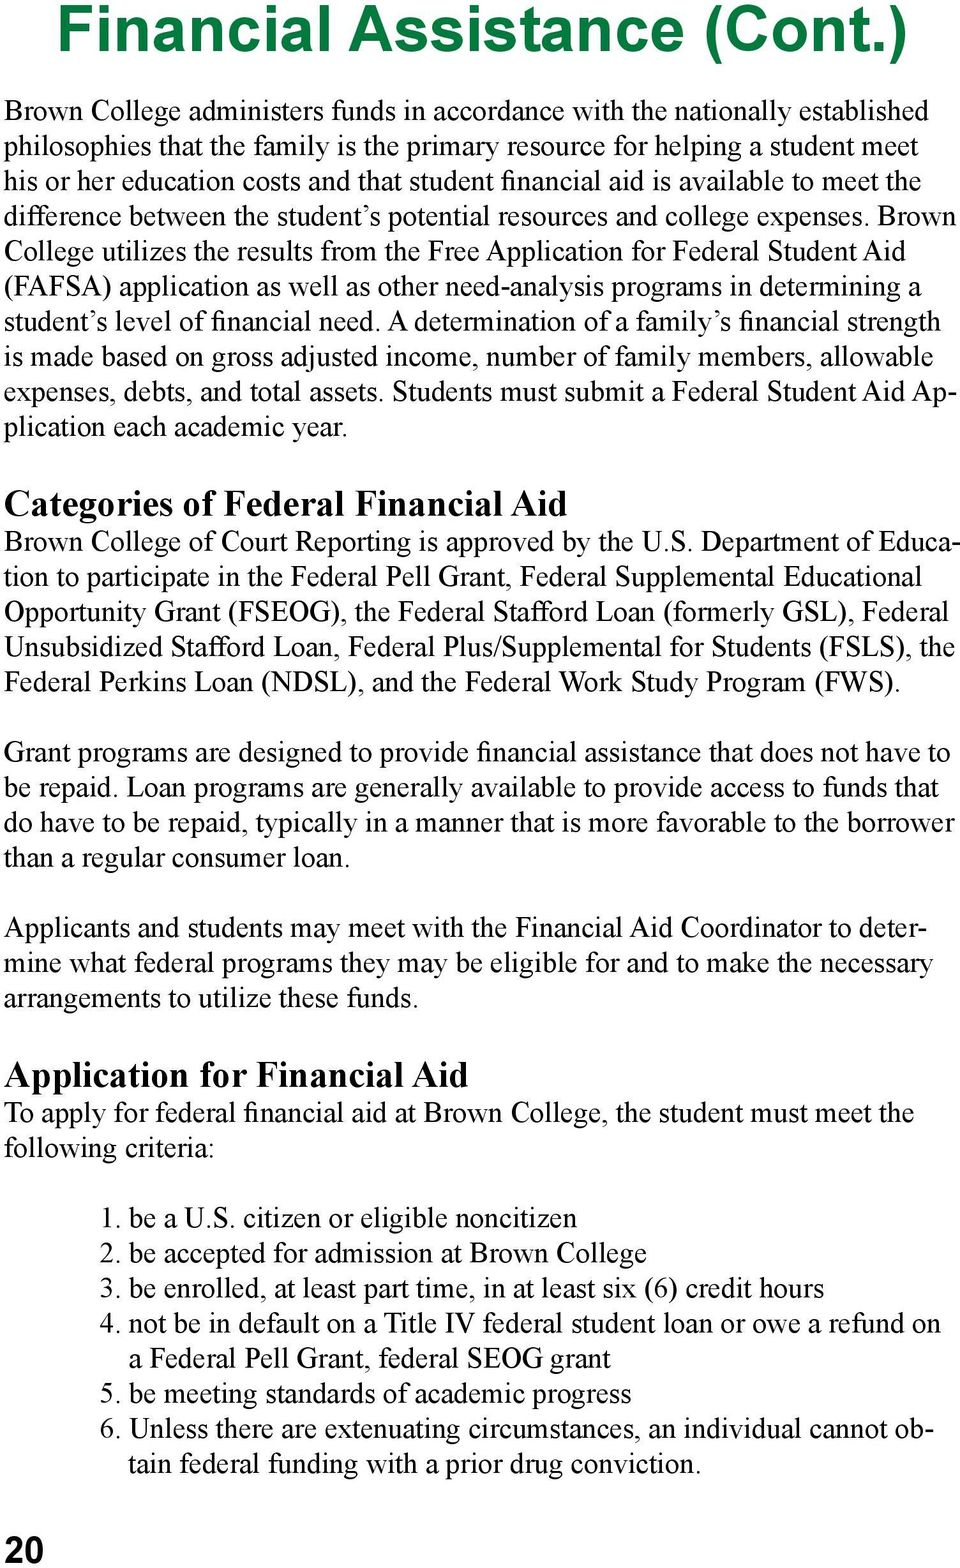 student financial aid is available to meet the difference between the student s potential resources and college expenses.